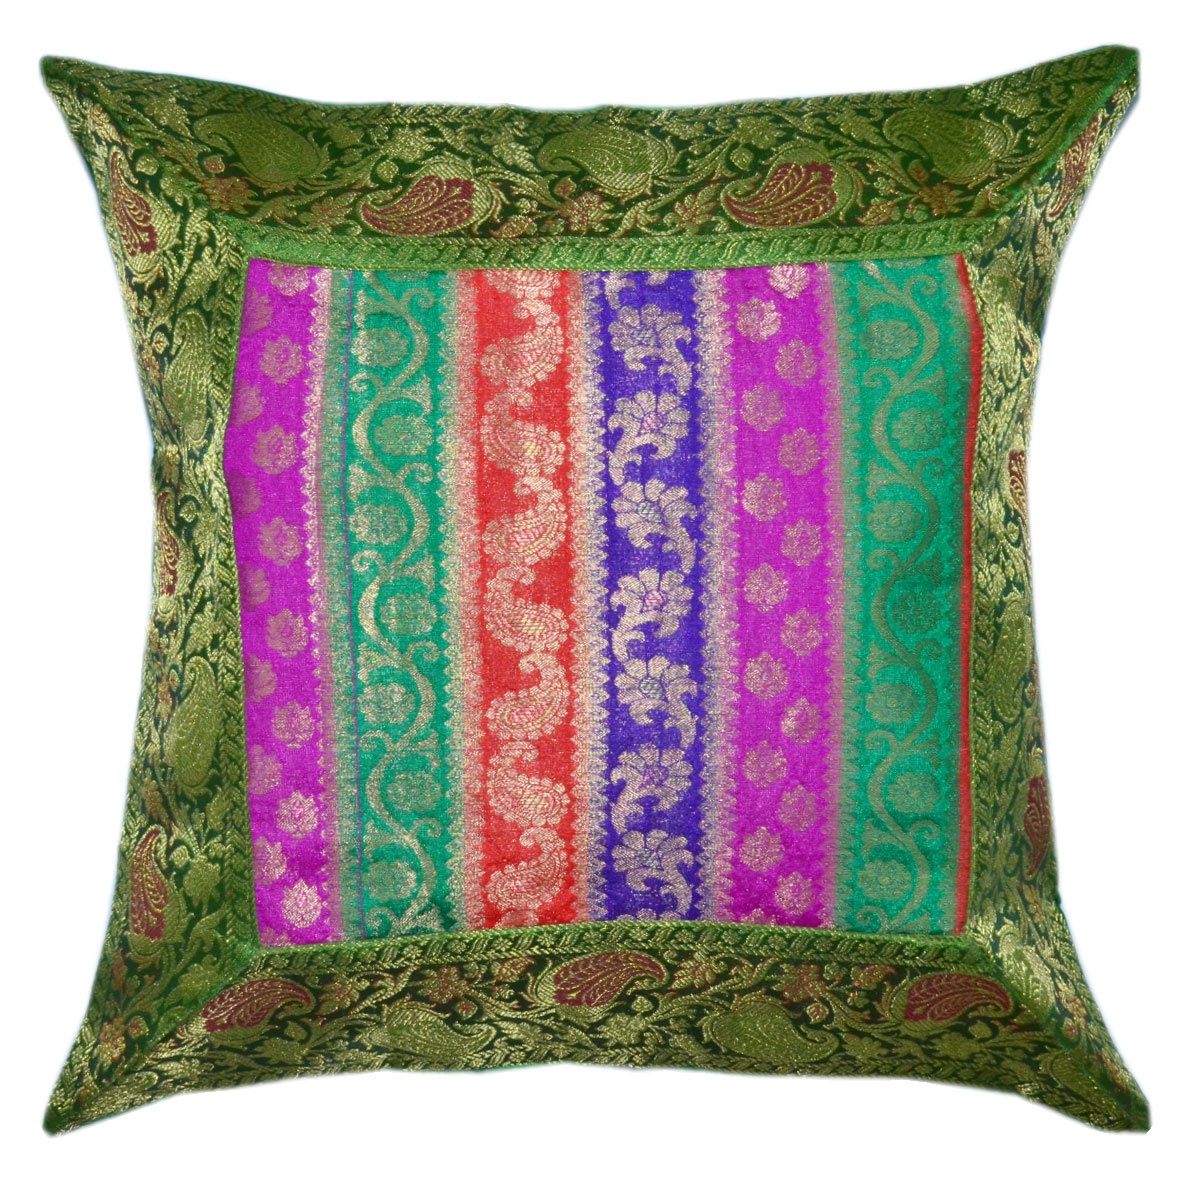 Multi Floral Striped Bohemian Style Silk Throw Pillow Cover - RoyalFurnish.com